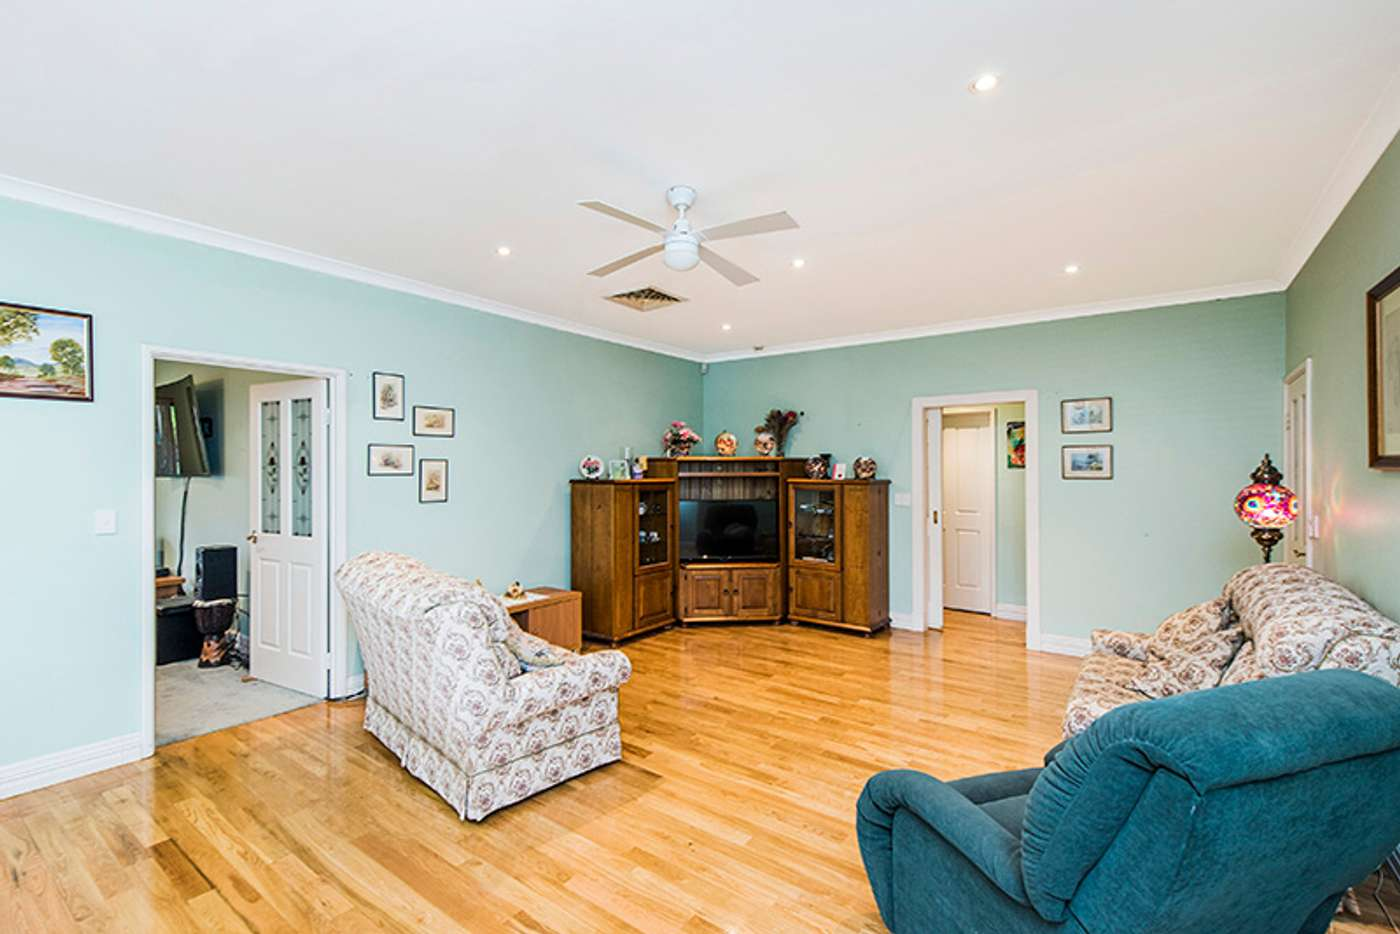 Sixth view of Homely house listing, 18 George Street, Jarrahdale WA 6124